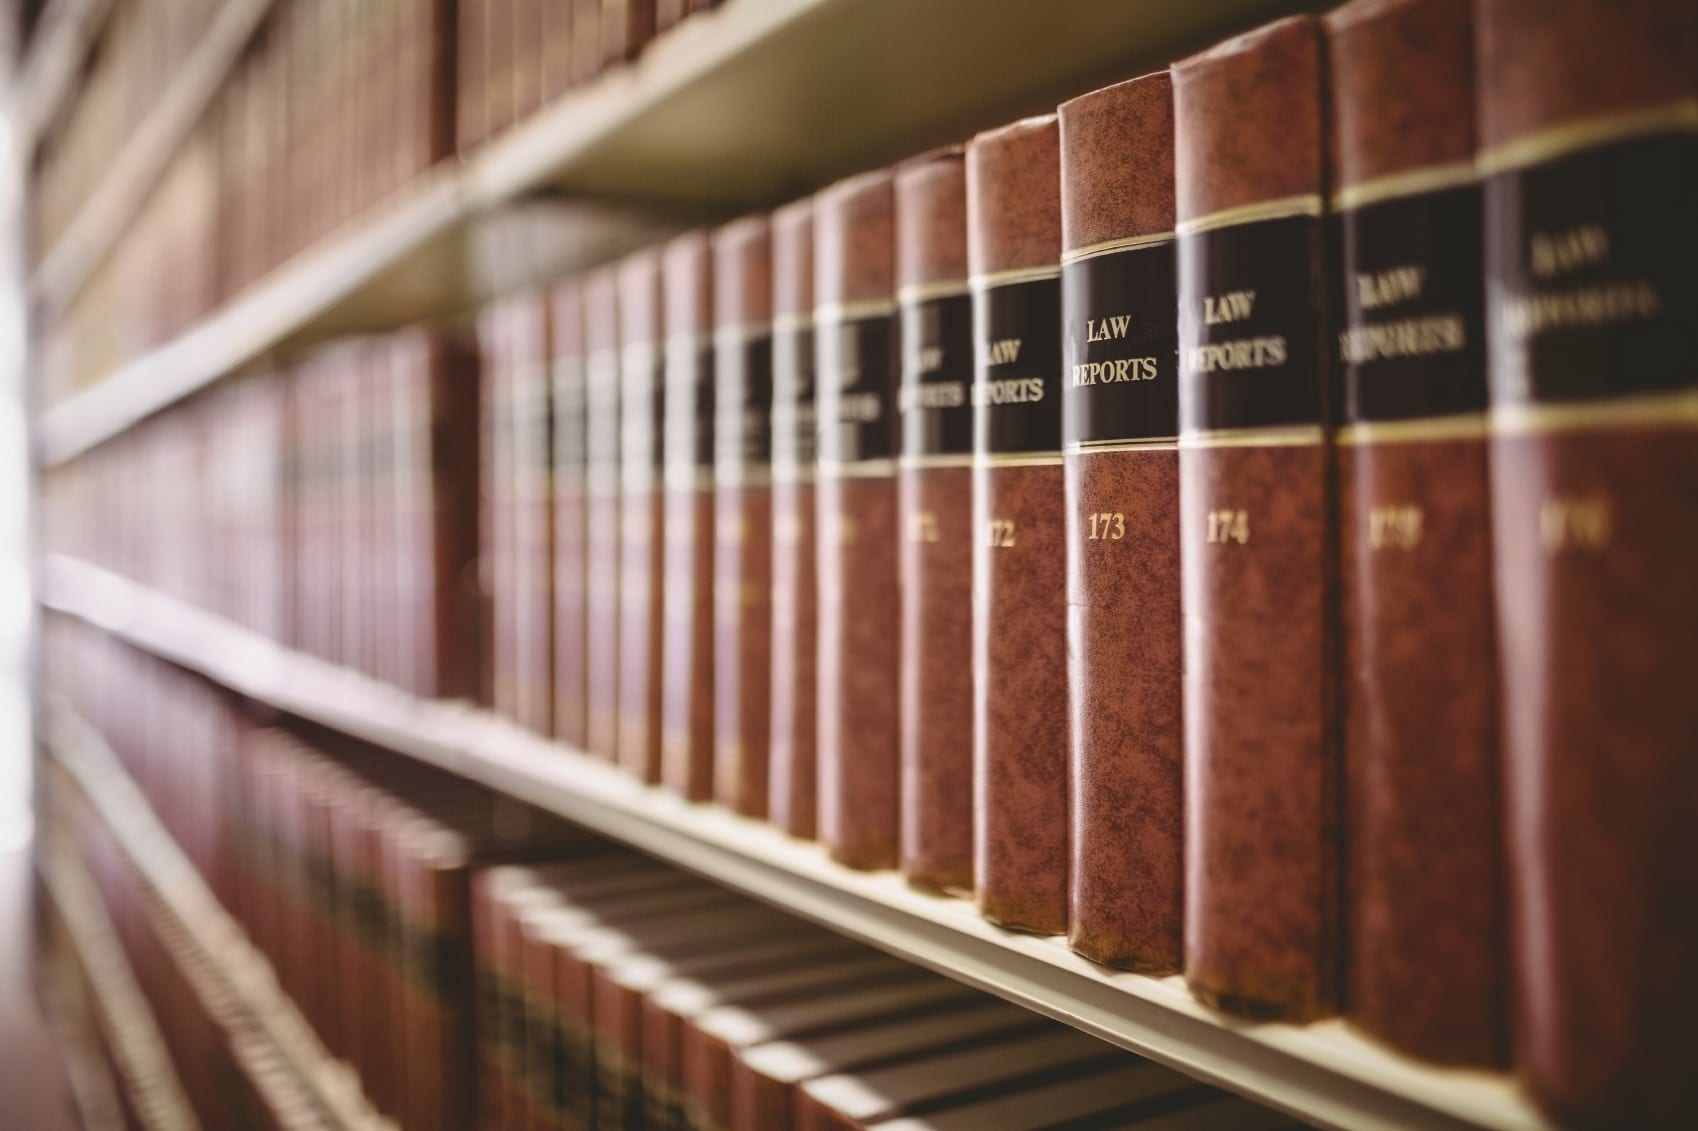 Bookshelf Of Legal Textbooks Stock Photo